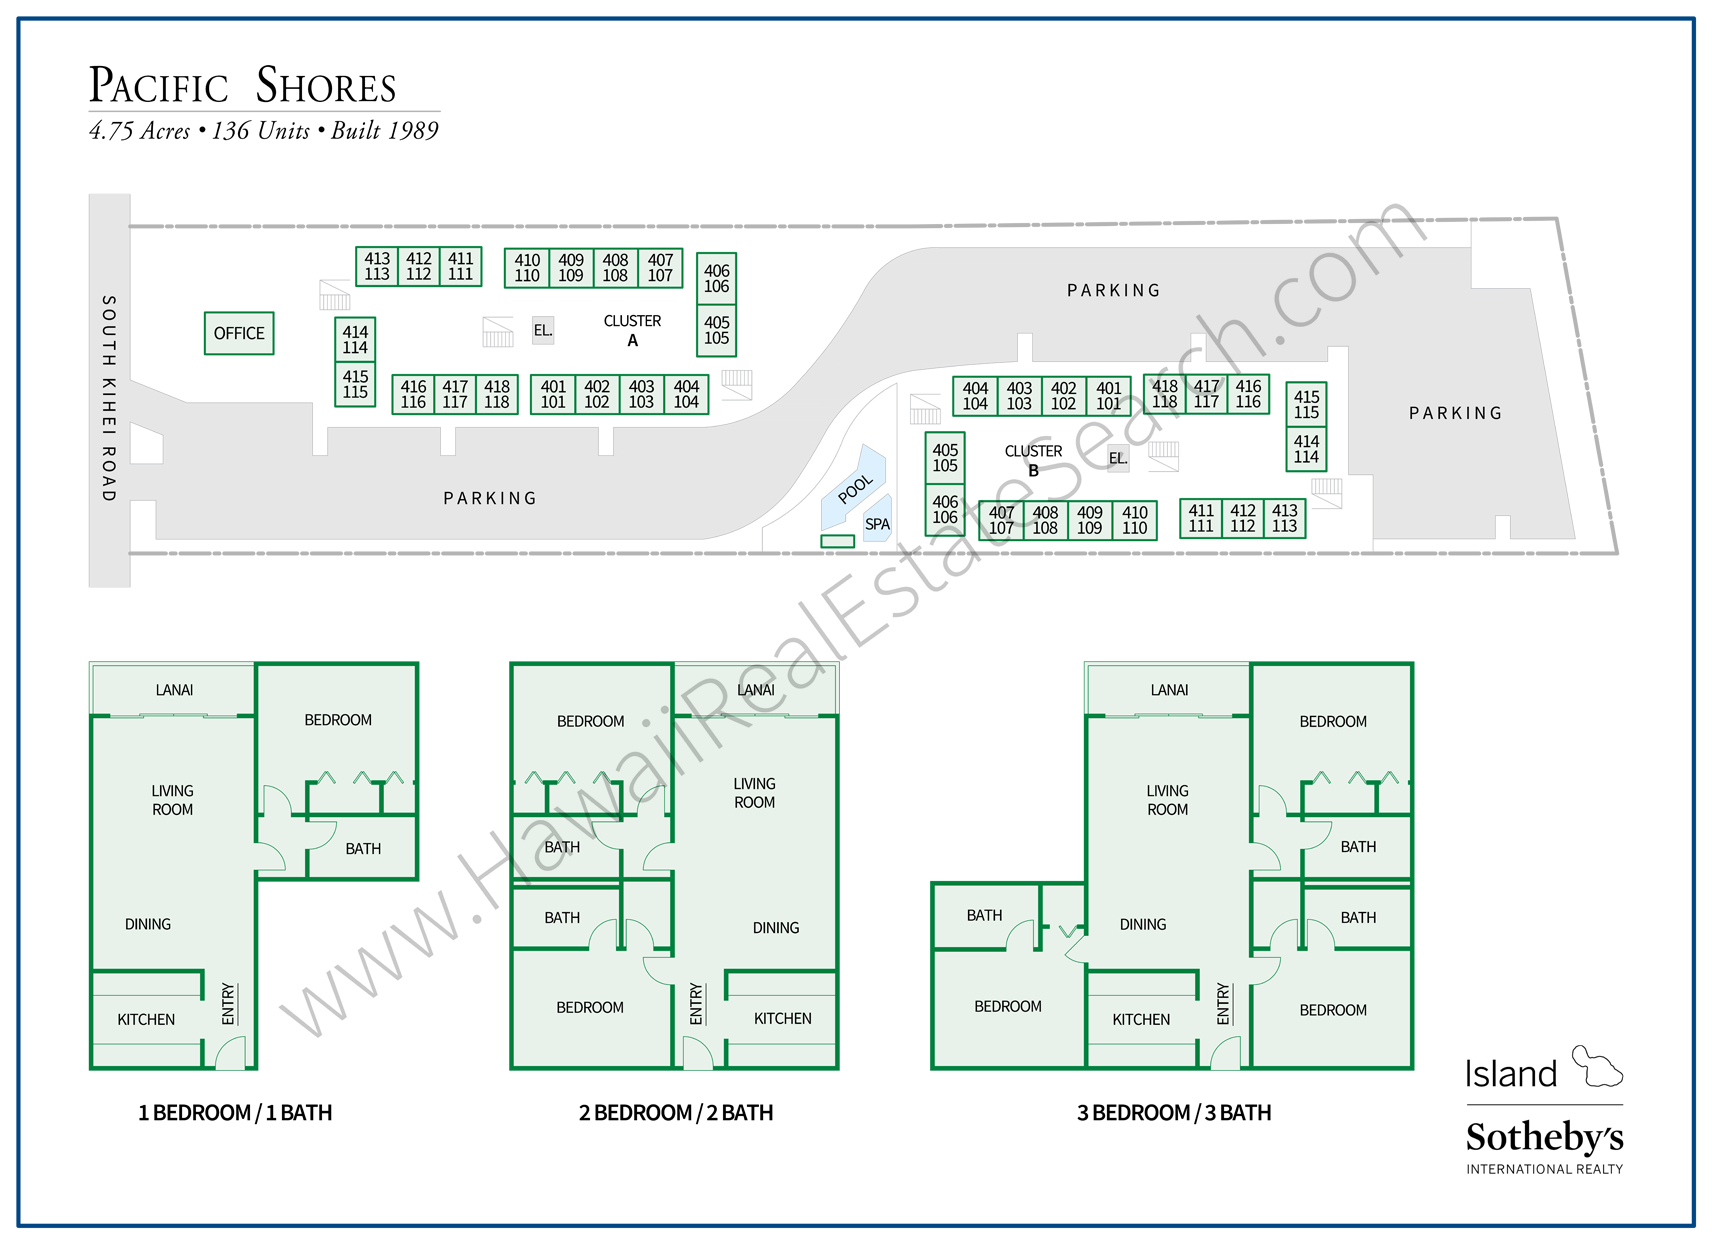 pacific shores map and floor plans